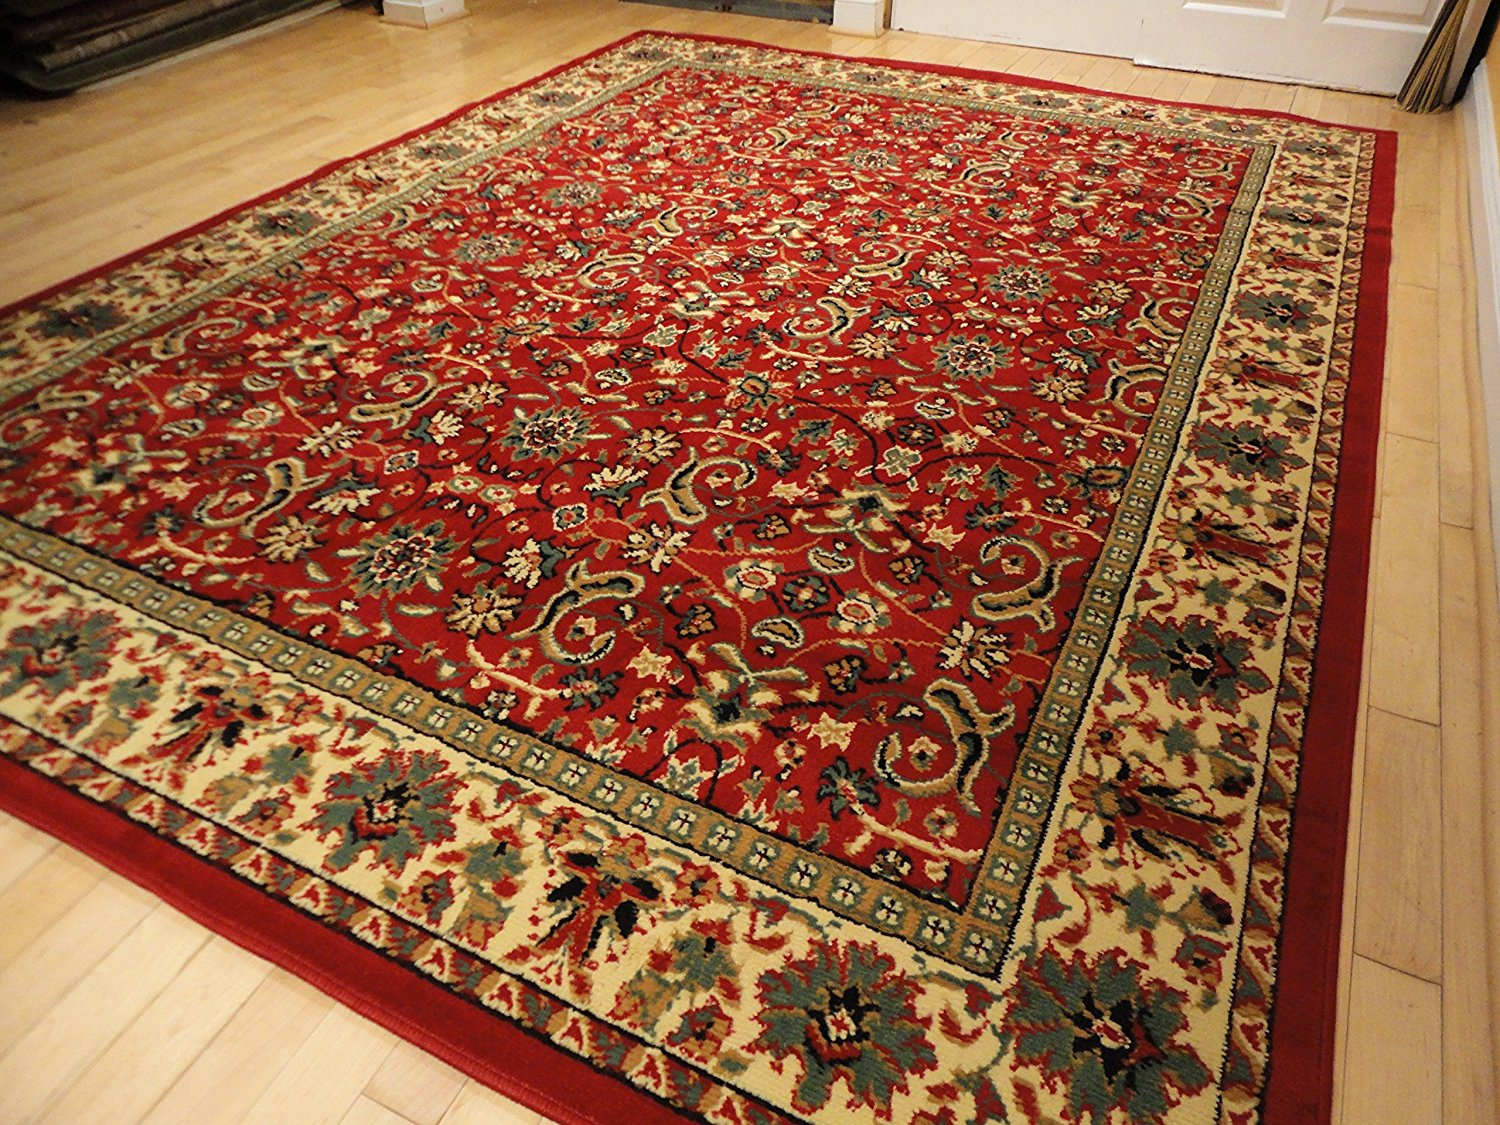 Buy Red Traditional Rug Large Red 8x11 Persian Rug Red